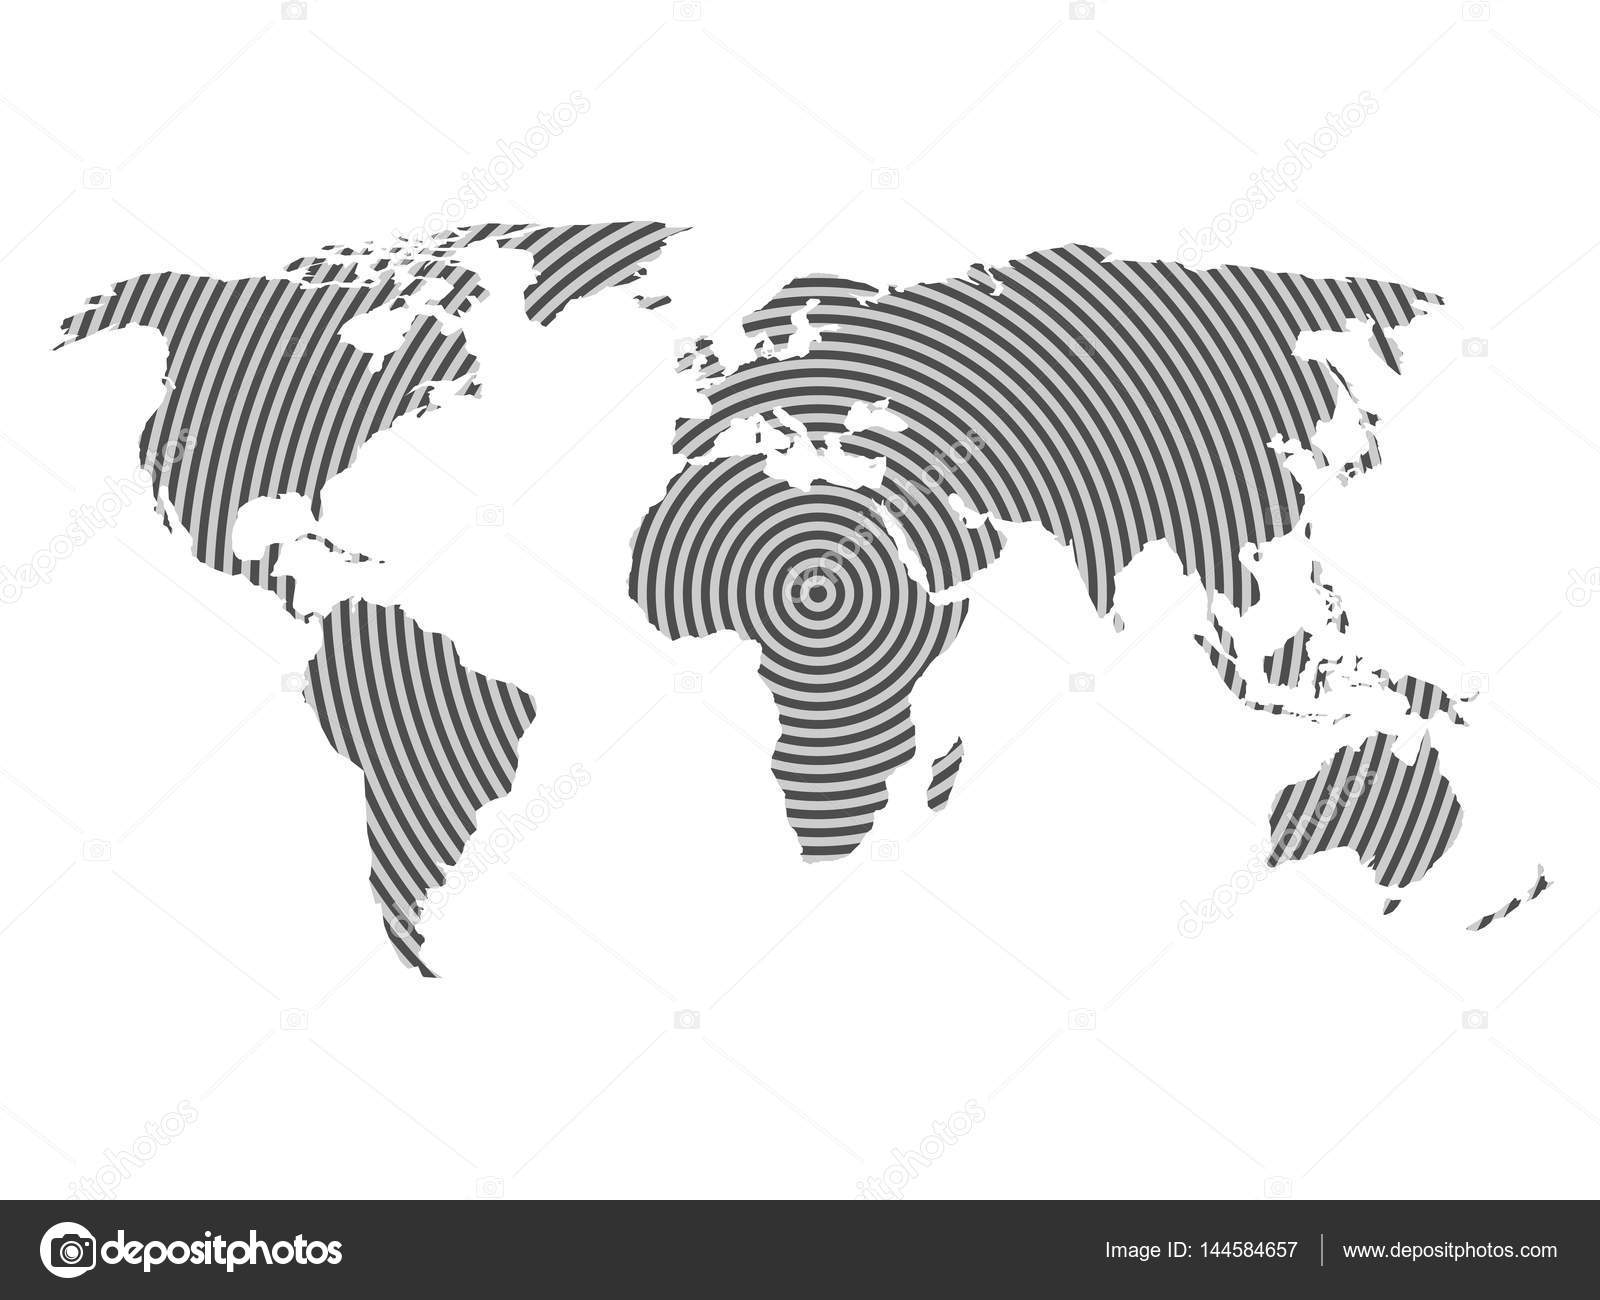 World map of grey concentric rings on white background worldwide world map of grey concentric rings on white background worldwide communication radio waves concept modern design vector wallpaper vector by pyty gumiabroncs Gallery